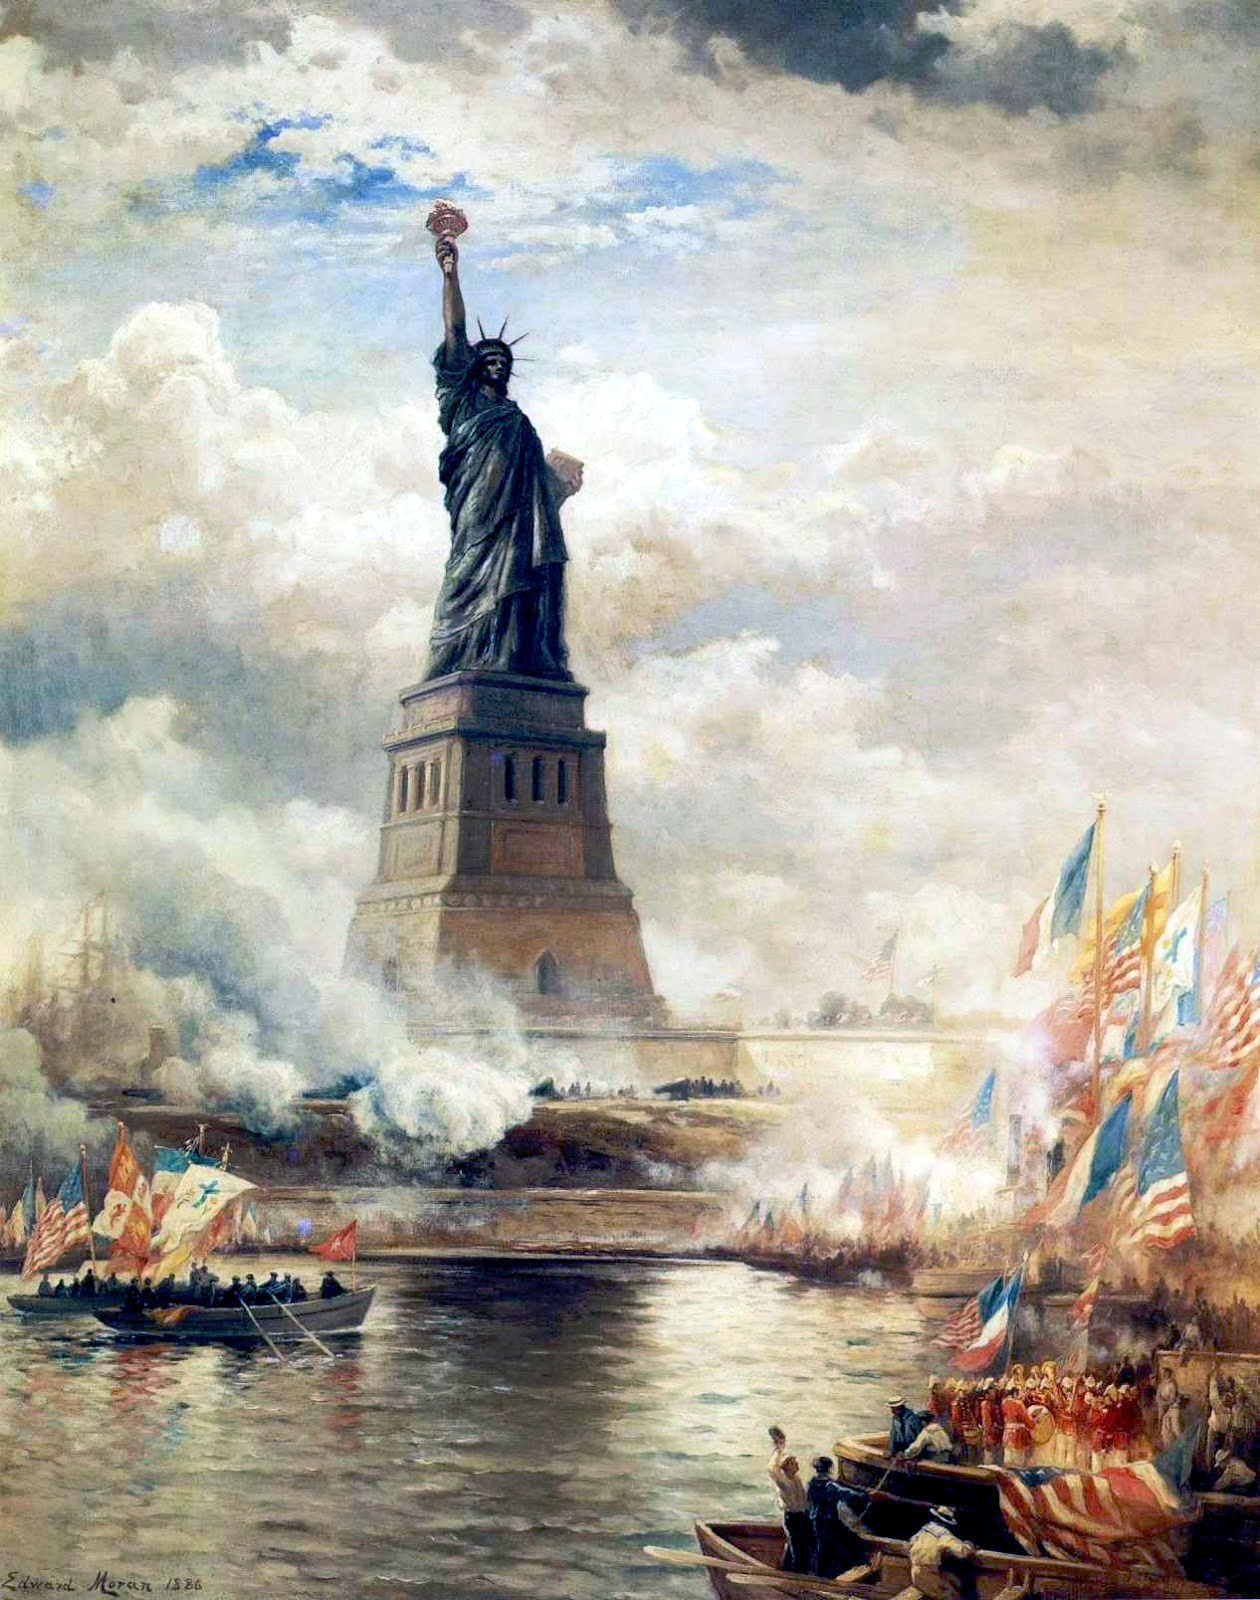 http://upload.wikimedia.org/wikipedia/commons/6/6e/EdwardMoran-UnveilingTheStatueofLiberty1886Large.jpg